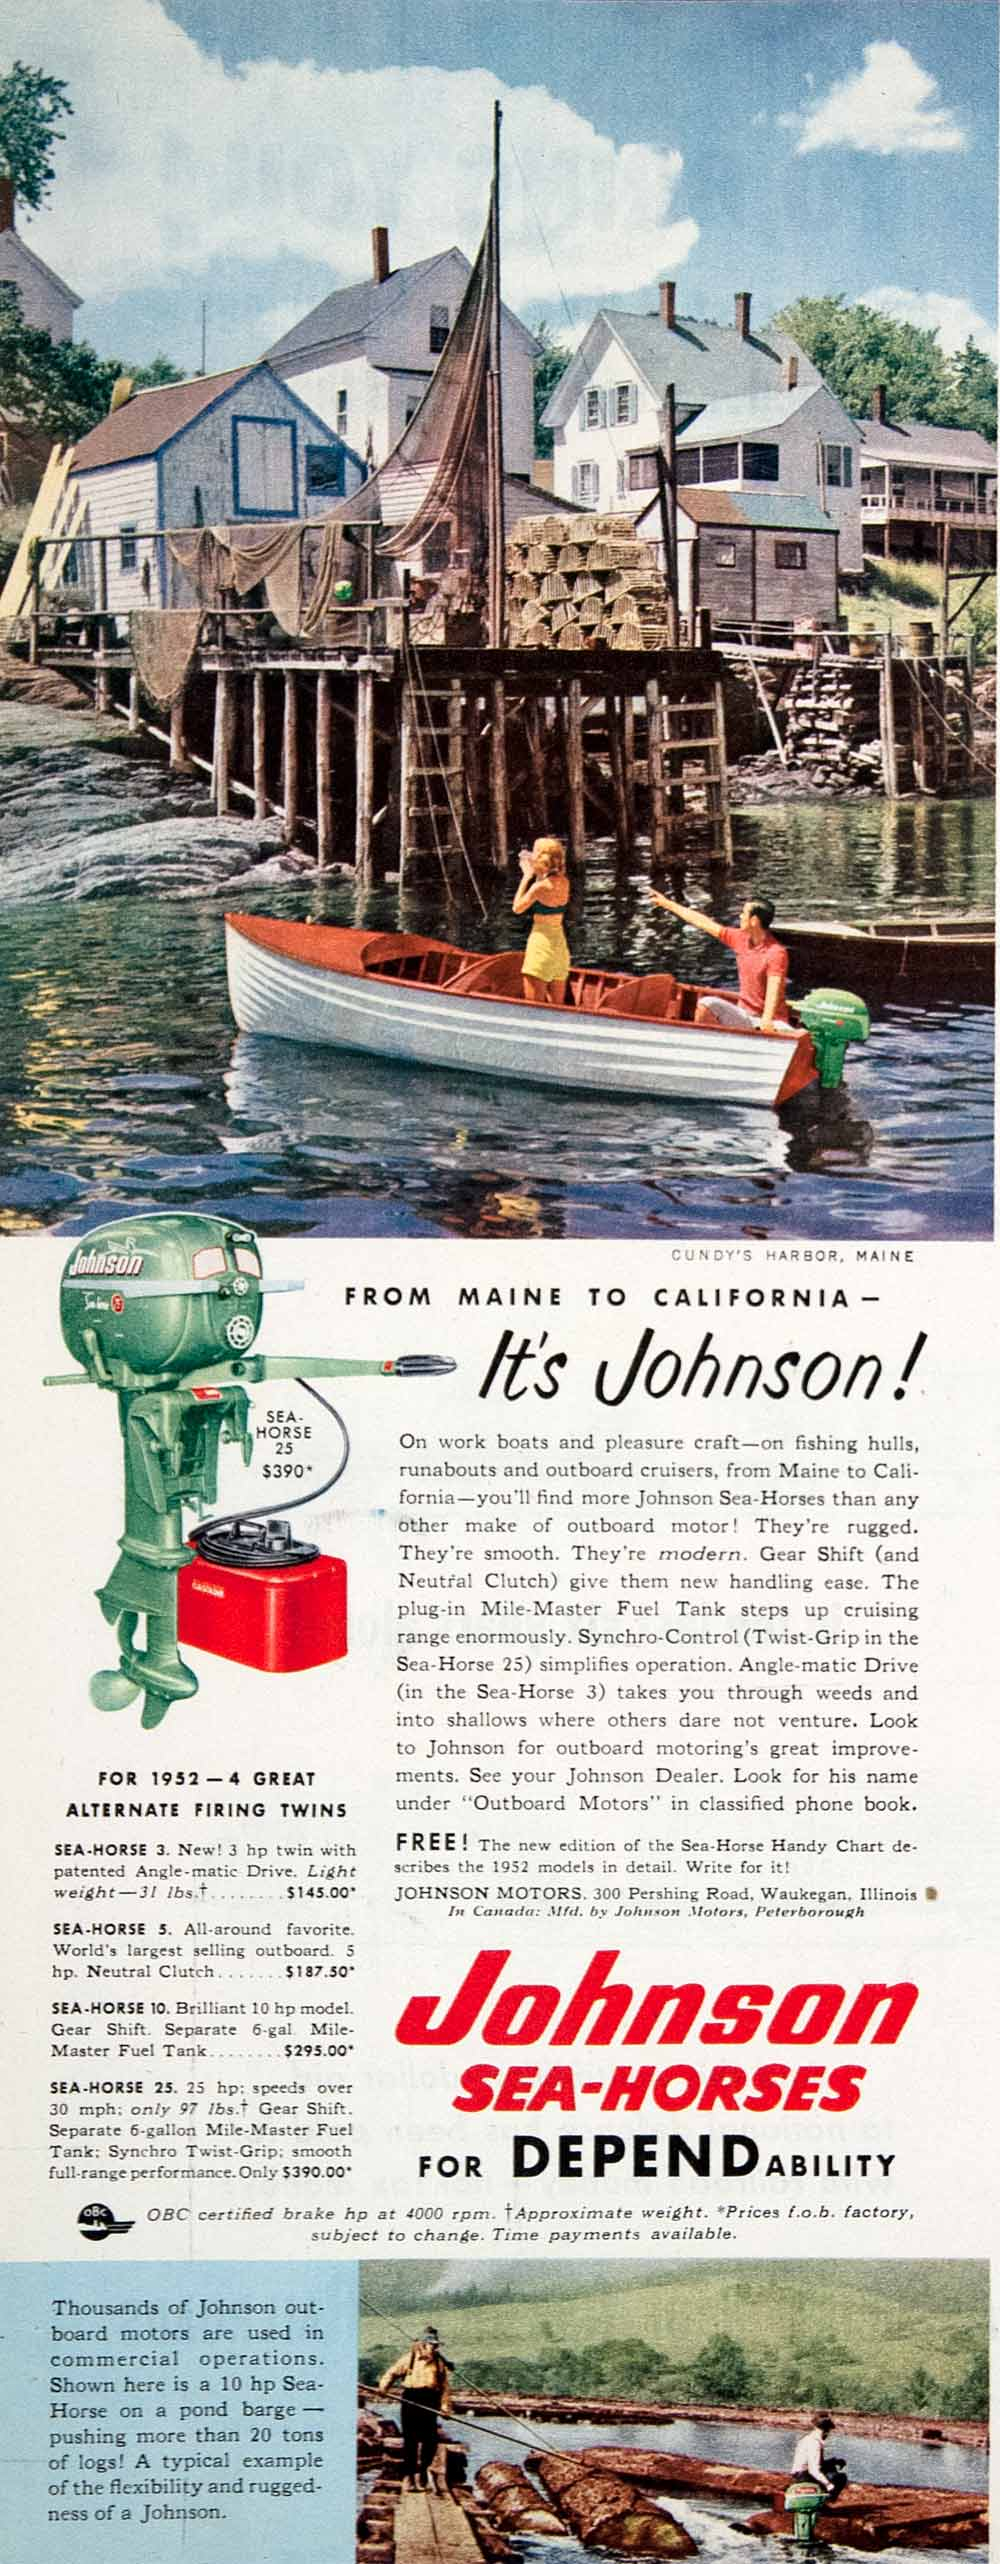 1952 Ad Johnson Sea Horse Outboard Motor Cundyu0027s Harbor Maine Logging COLL3